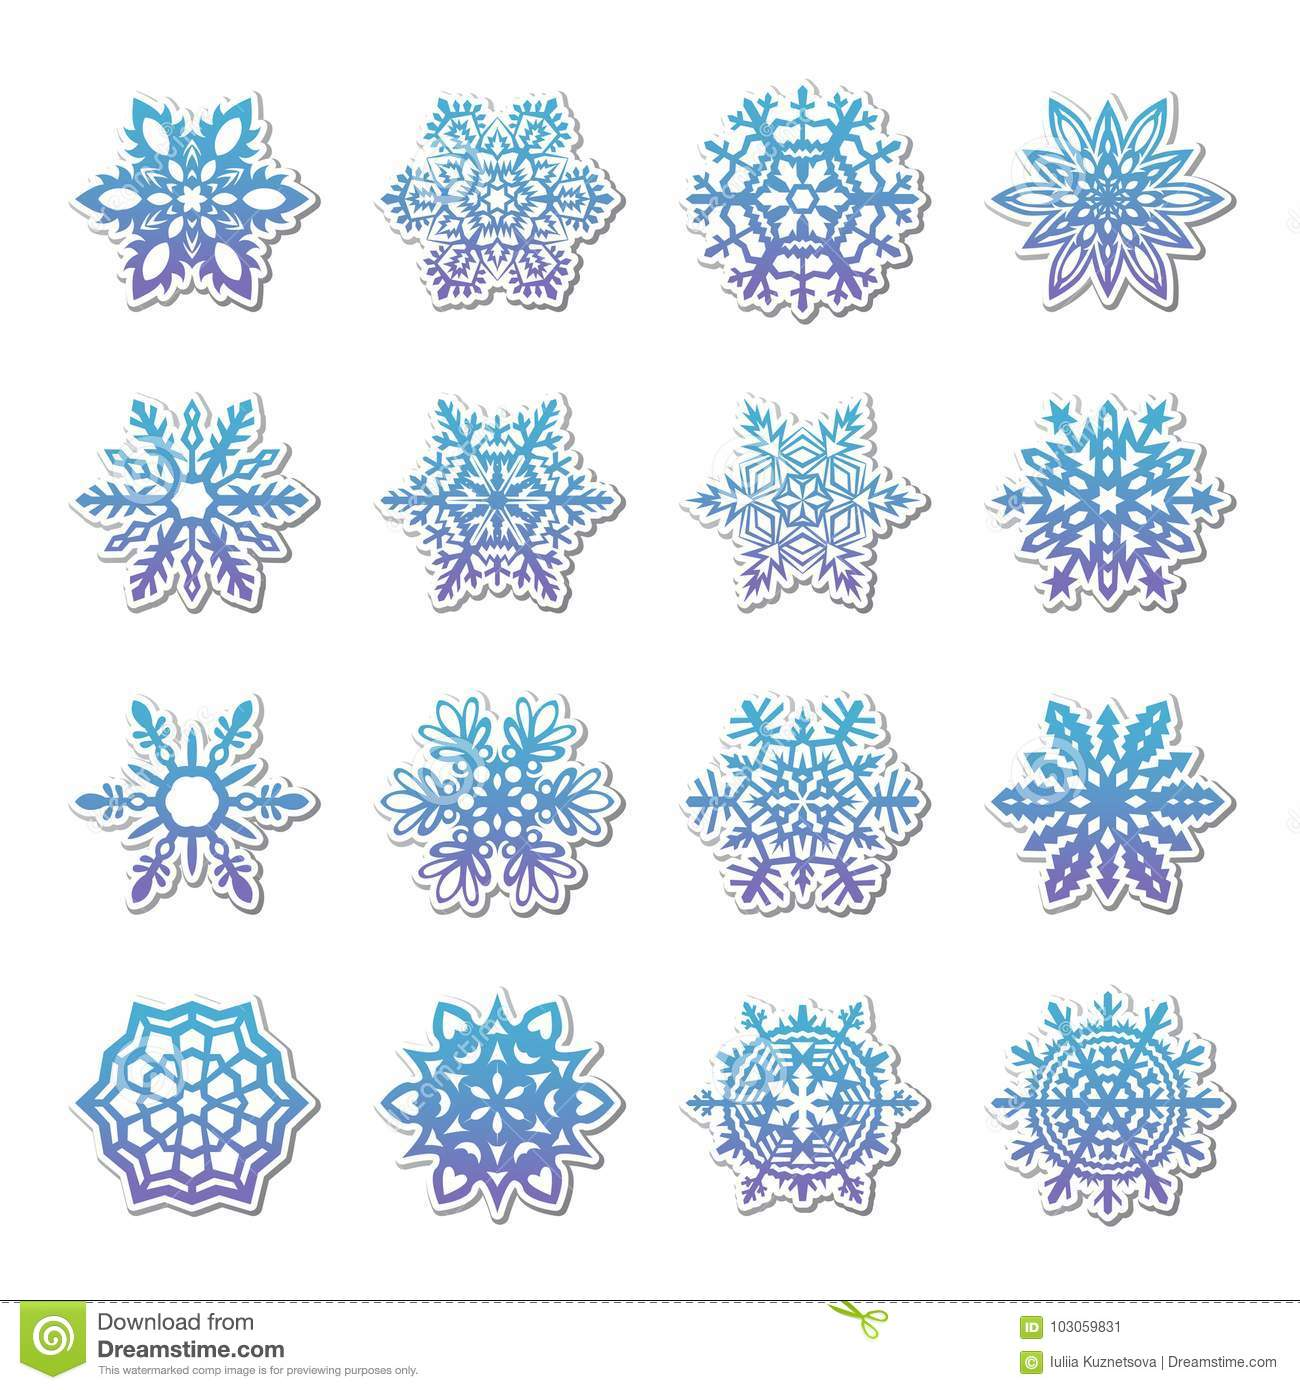 hight resolution of separate snowflakes doodles vector rustic christmas clipart new year snow crystal illustration in flat style